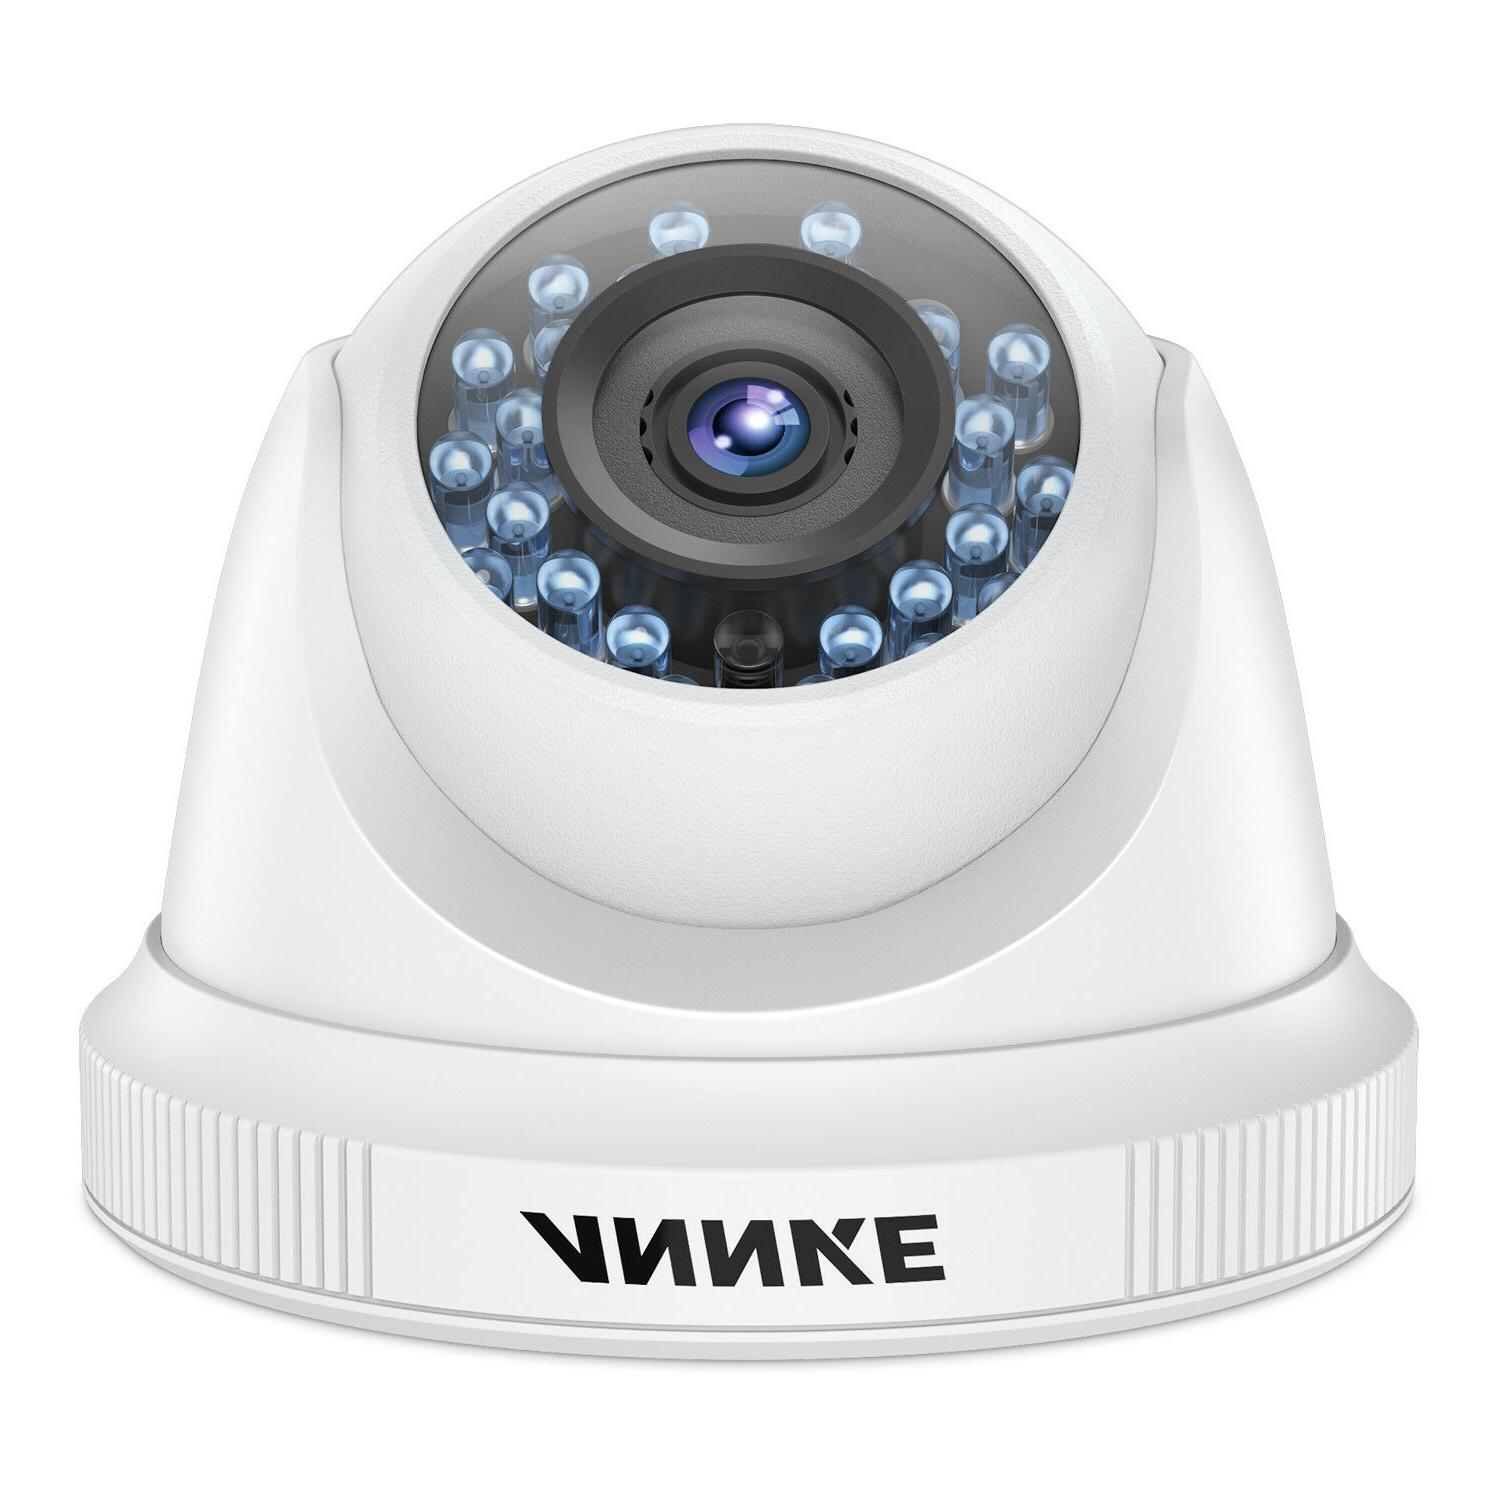 ANNKE DVR 2MP 1080P Home Night